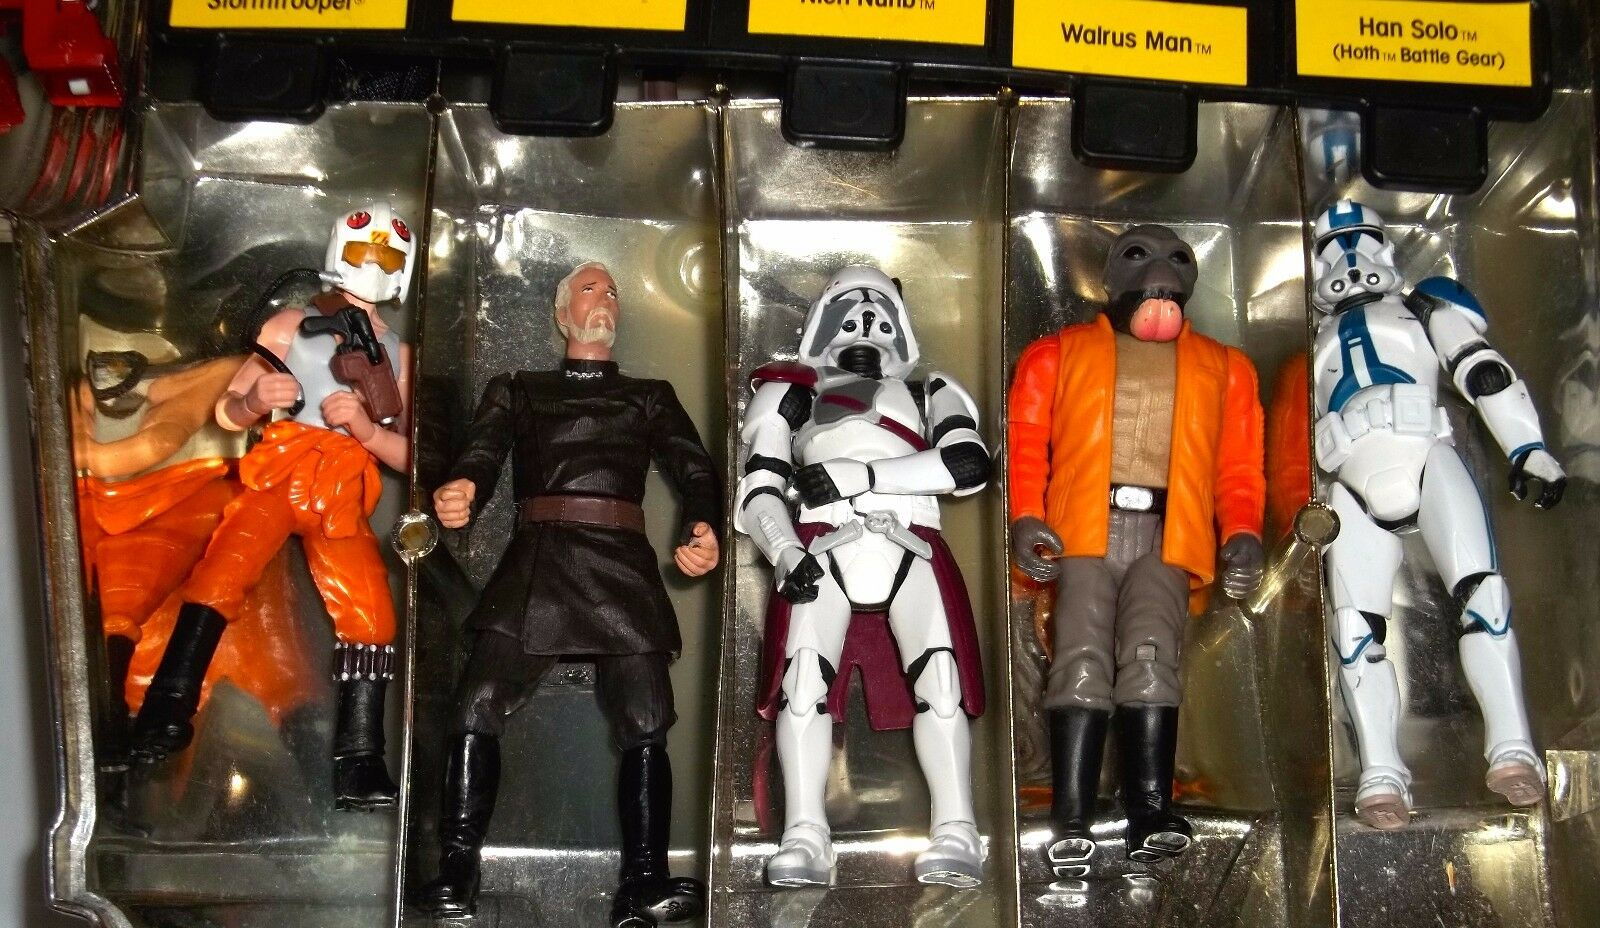 Lot Of 40 Vintage Star Wars Action Action Action Figures With Original gold C-3PO Case - Rare 41d235